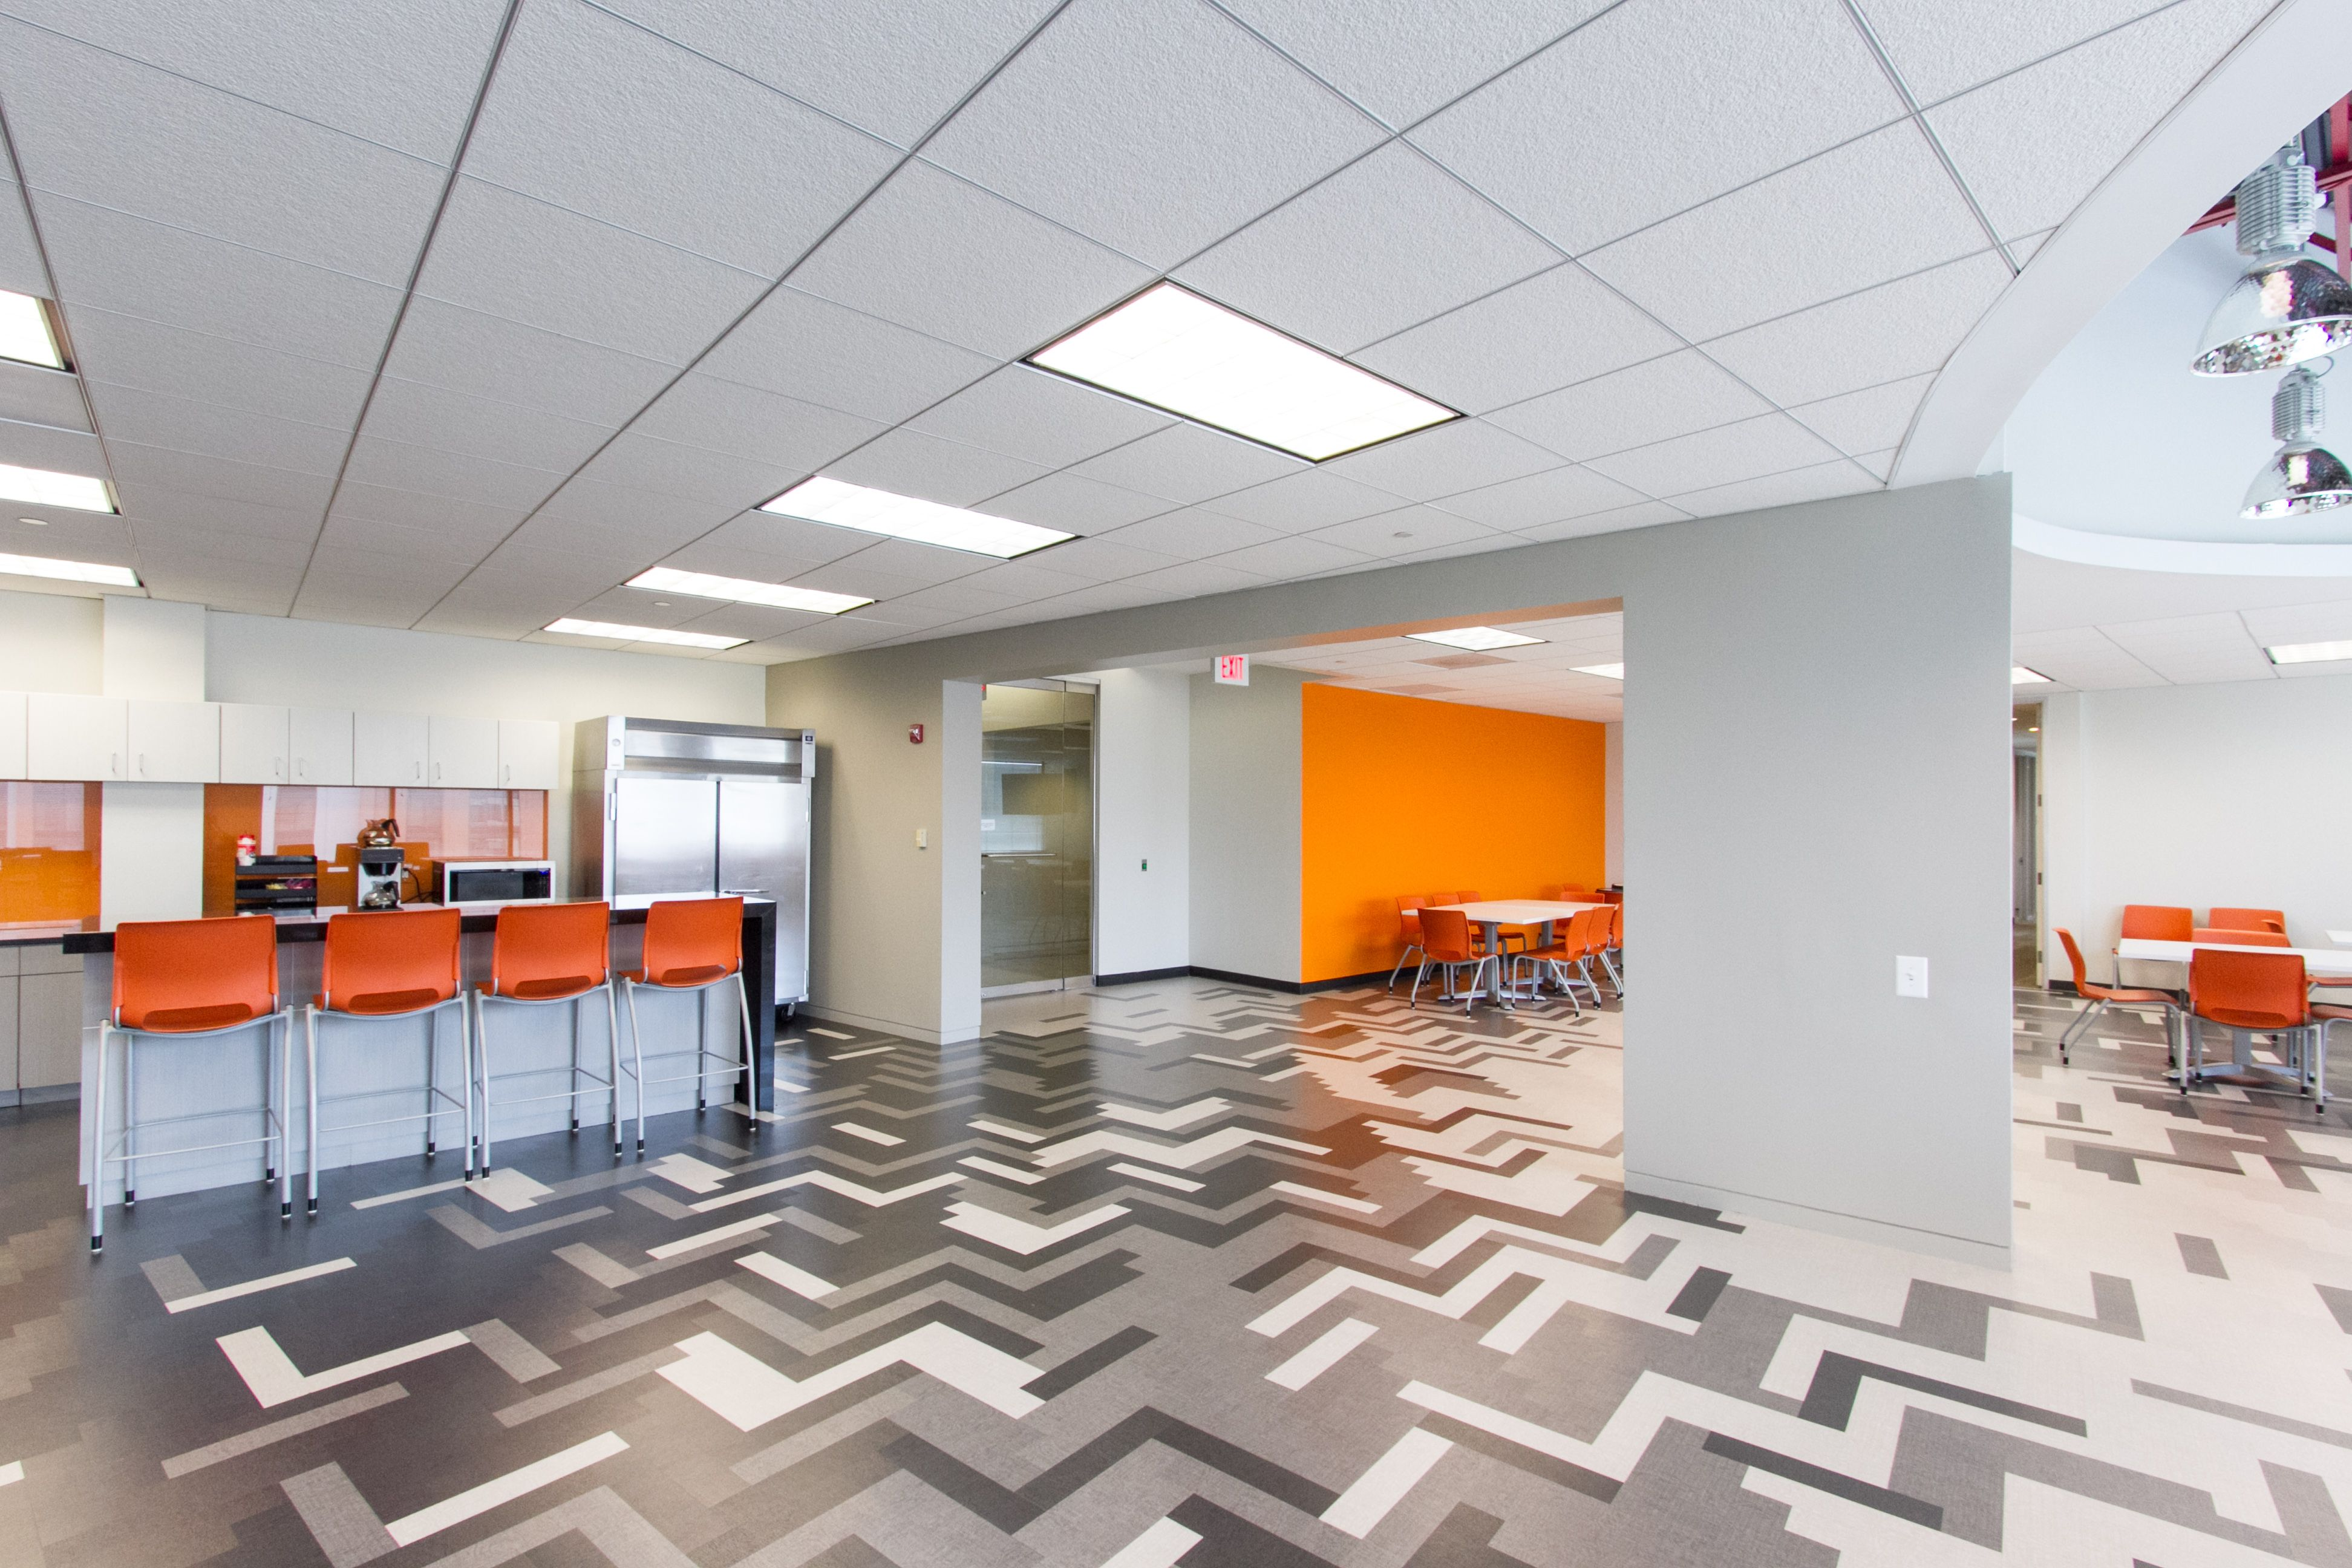 A Black, White, And Gray Break Room With Orange Accents